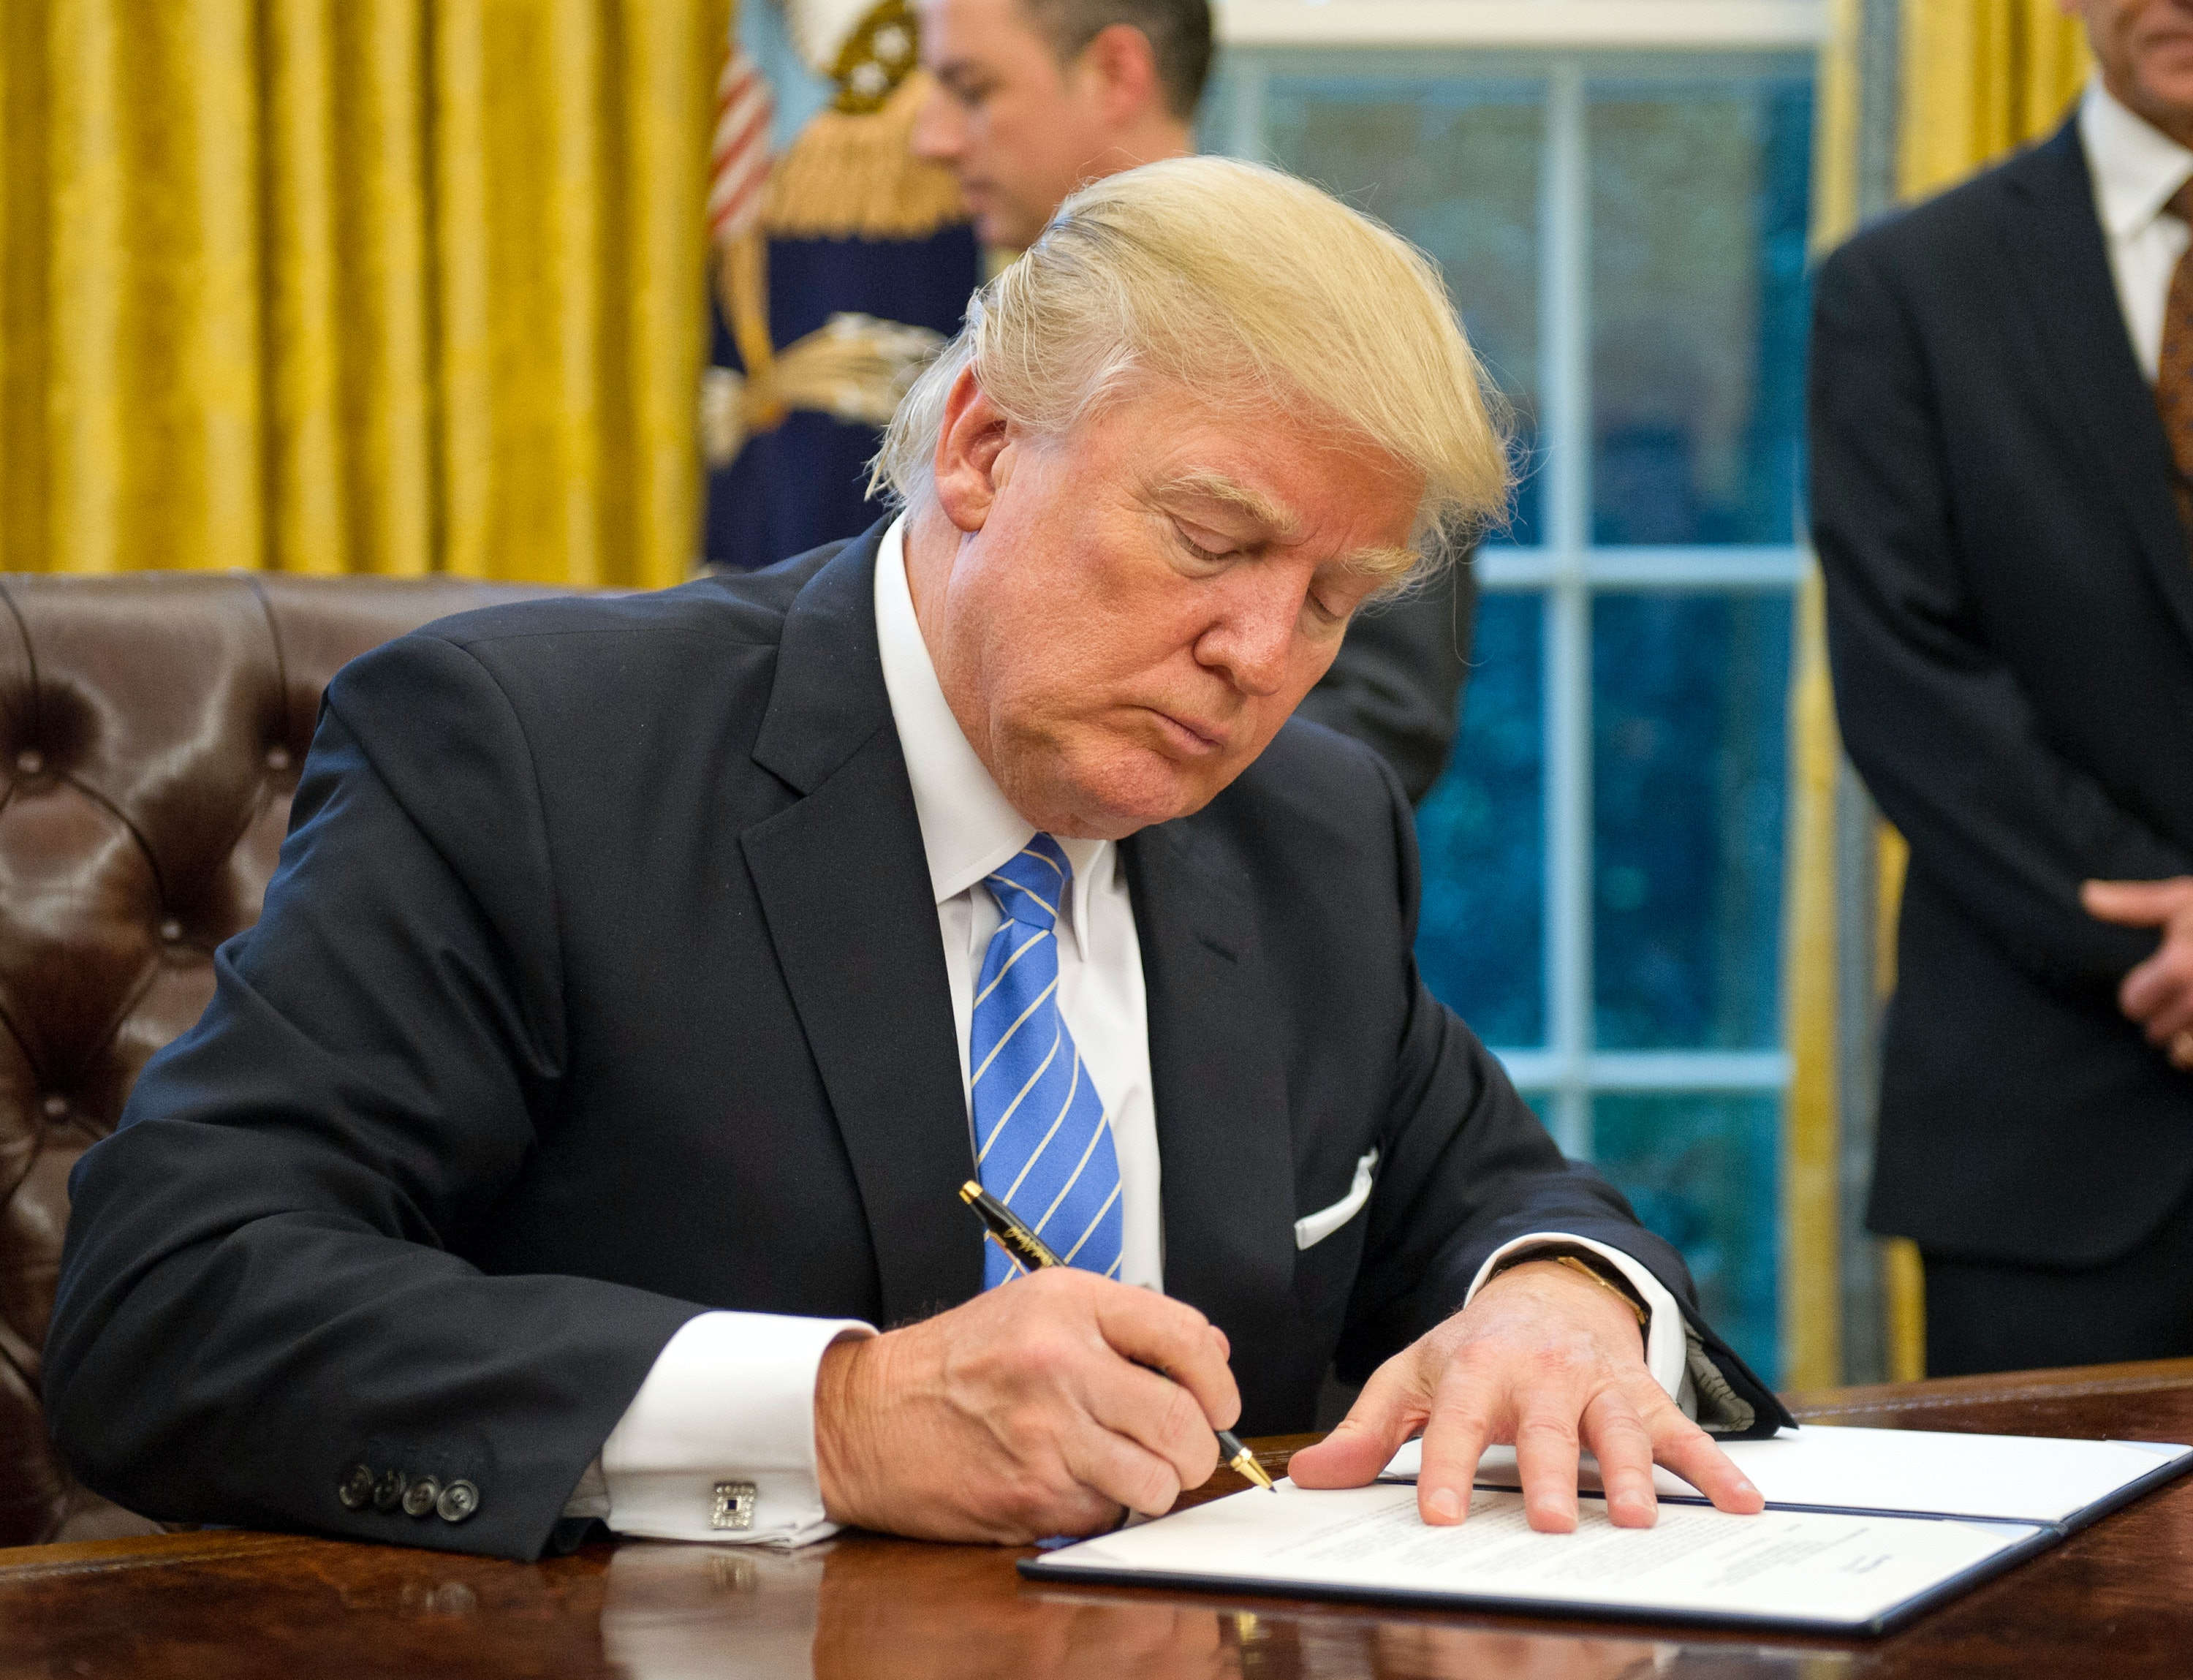 Trump Pulls Taxpayer Funding of Abortions Overseas